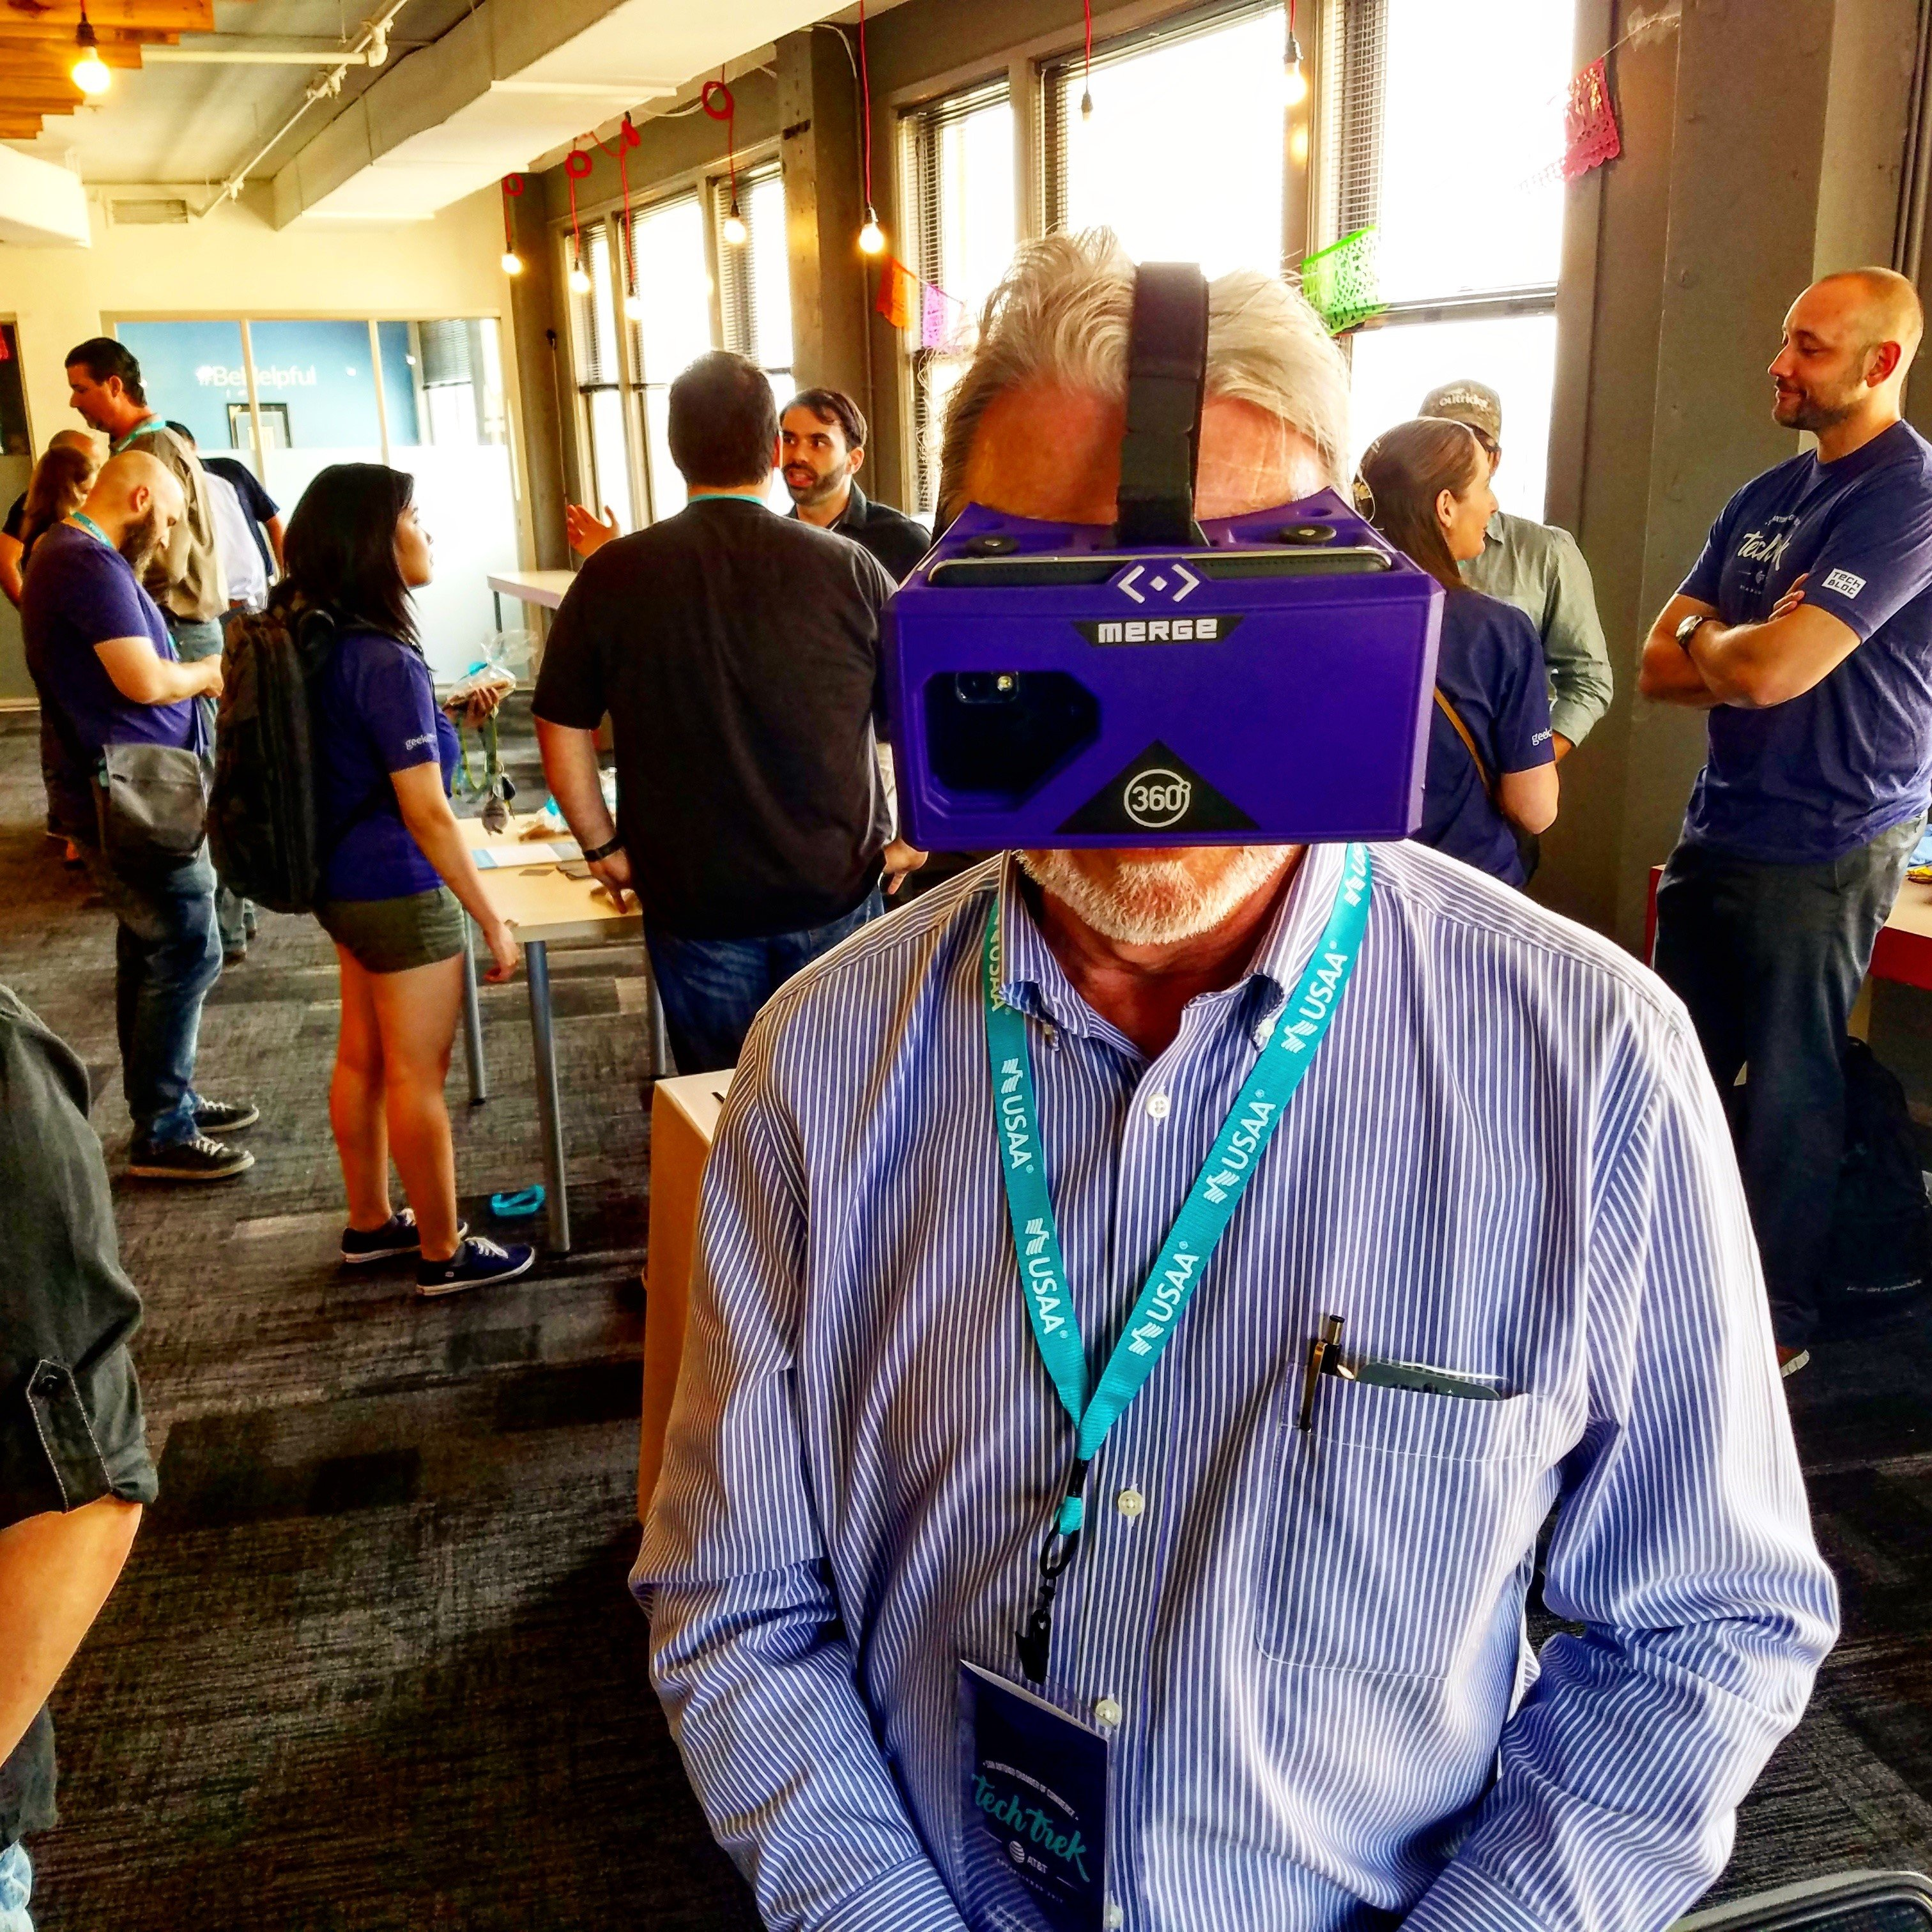 San Antonio resident views new doublewide mobile home using VR goggles.